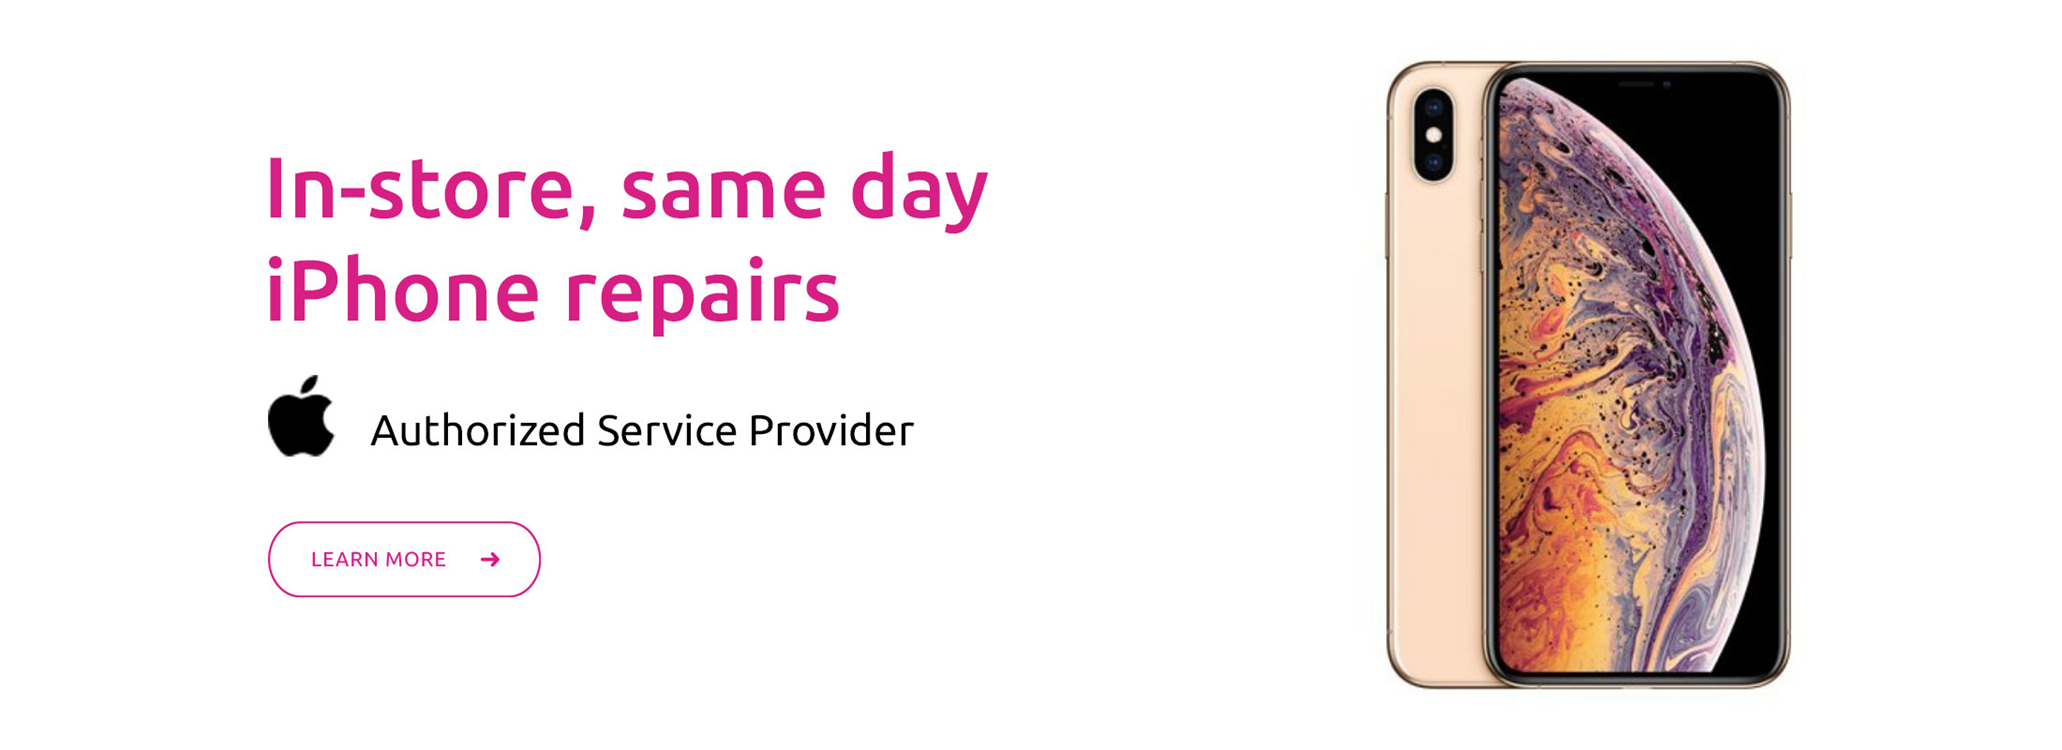 In-store, same day iPhone repairs